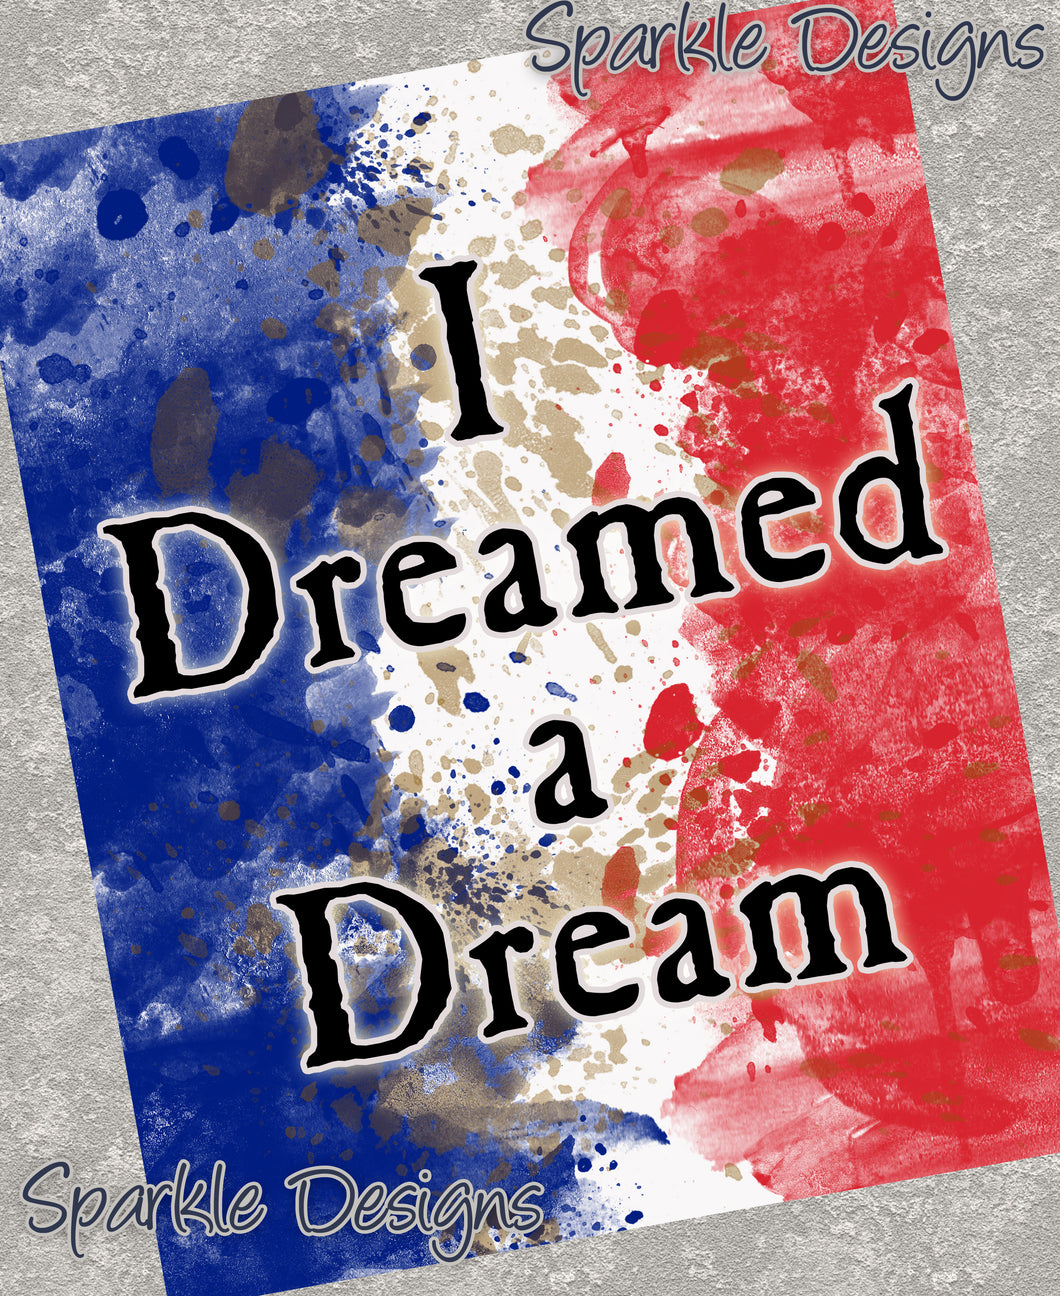 I dreamed a dream - Les Miserables 67 Art Print